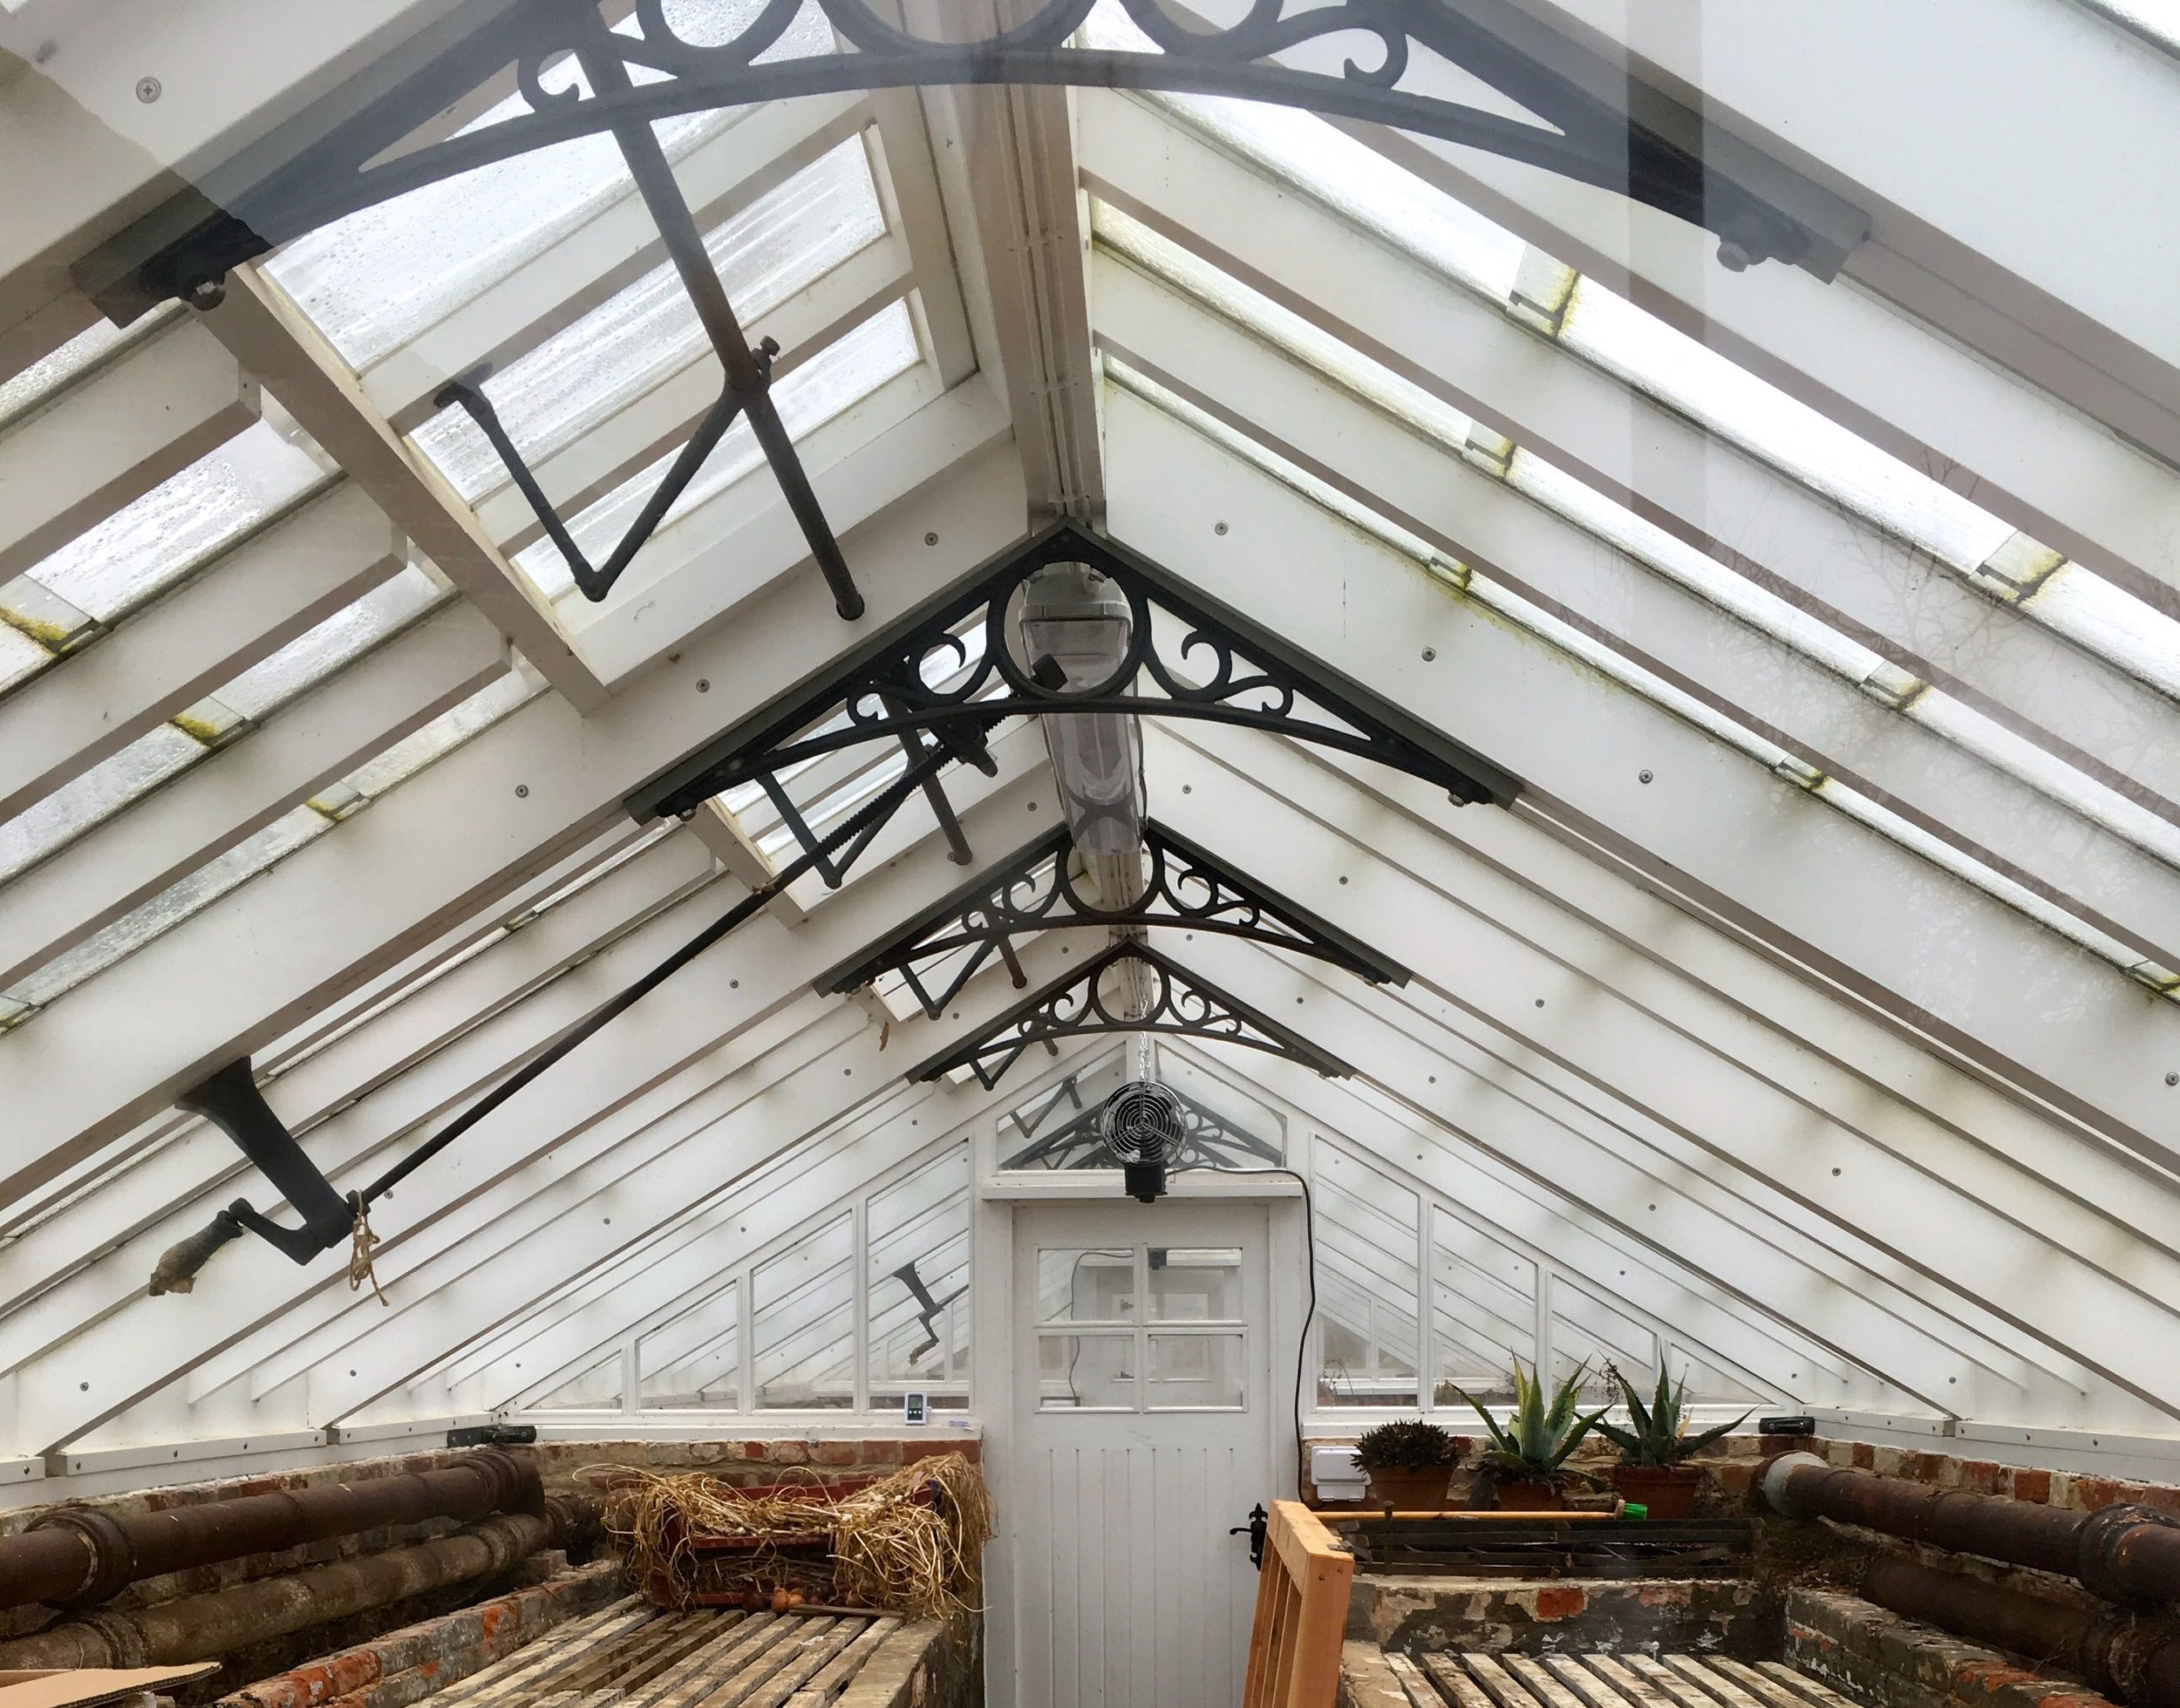 a peek inside the glasshouses - leaning in - to get a better look